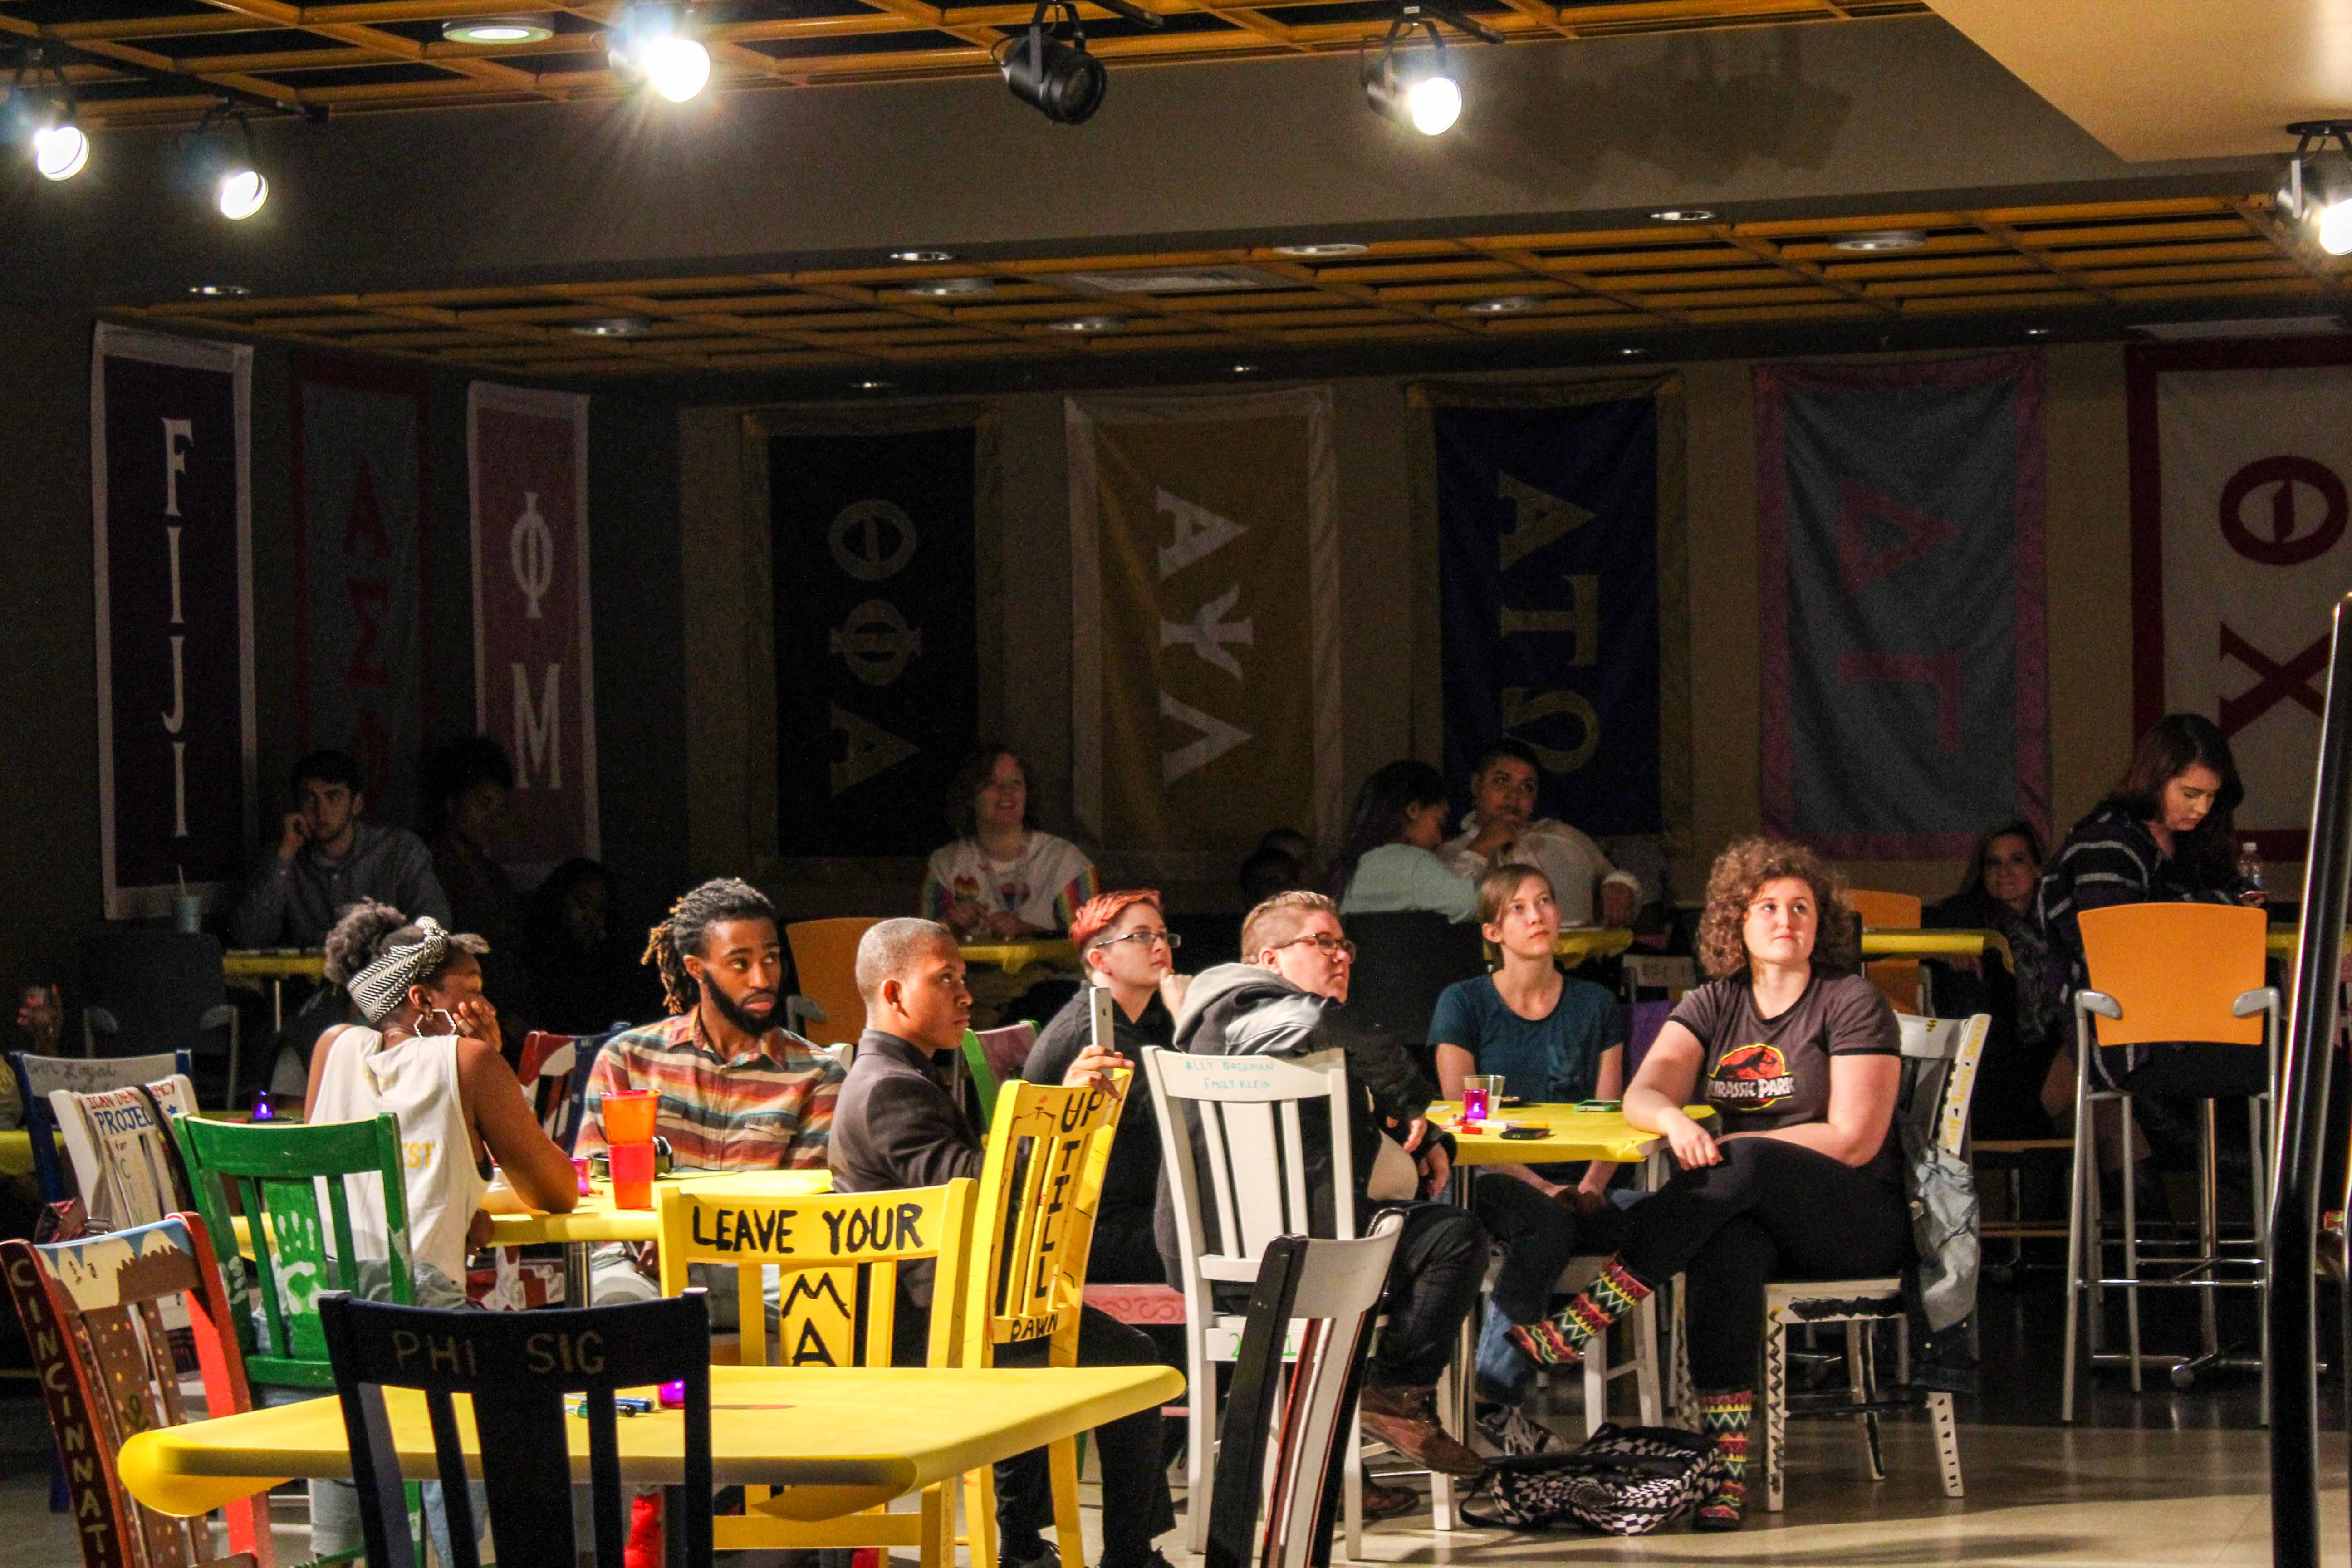 Students watch from the audience as participants perform at the 4th Annual LGBTQ Norse Pride Open Mic Night.